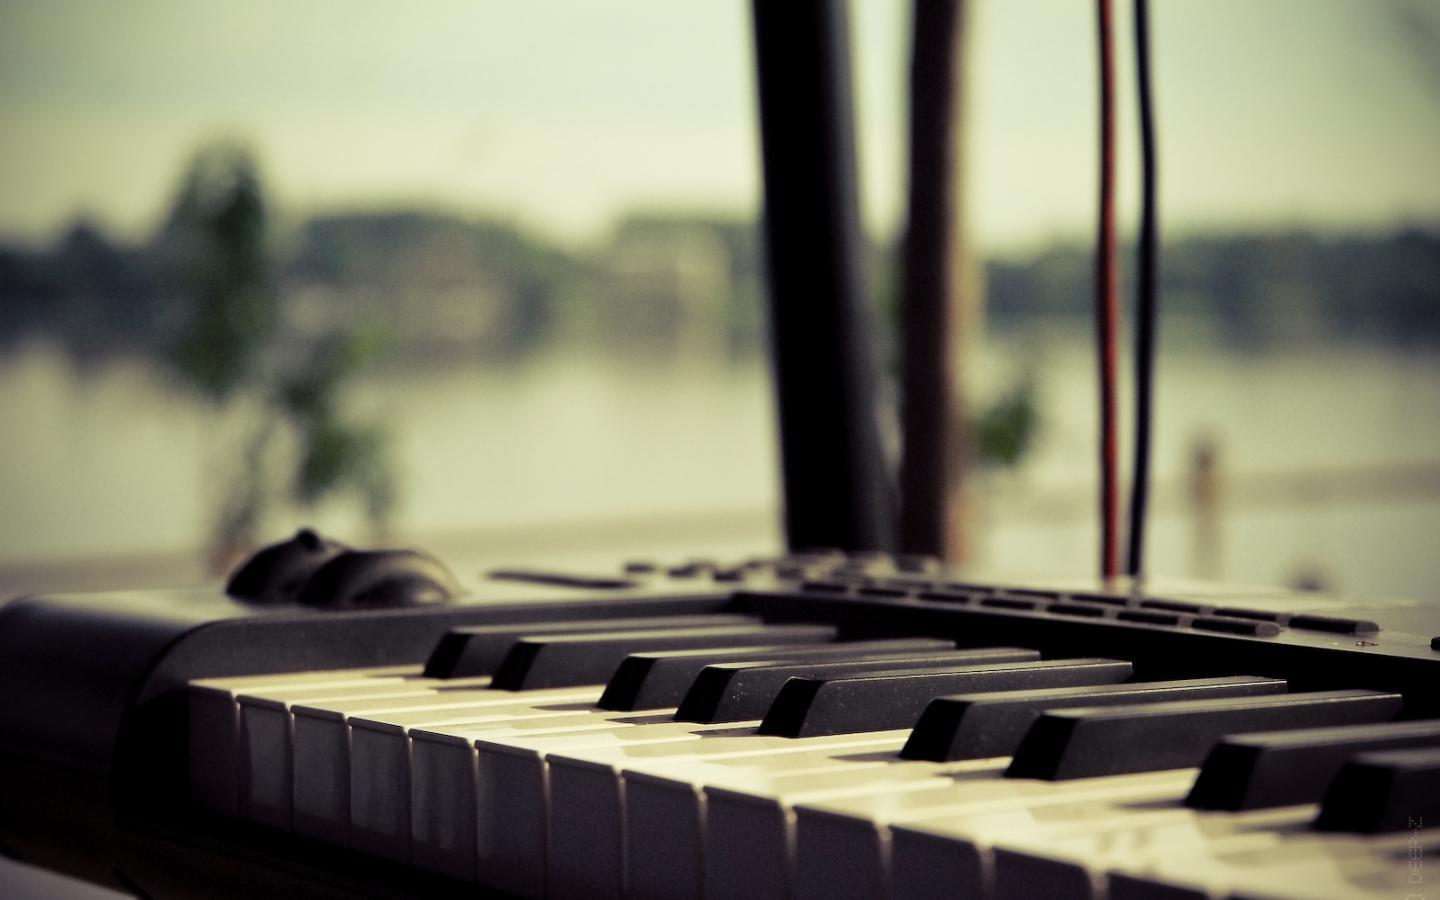 Piano Music Wallpaper: Synthesizer Wallpapers